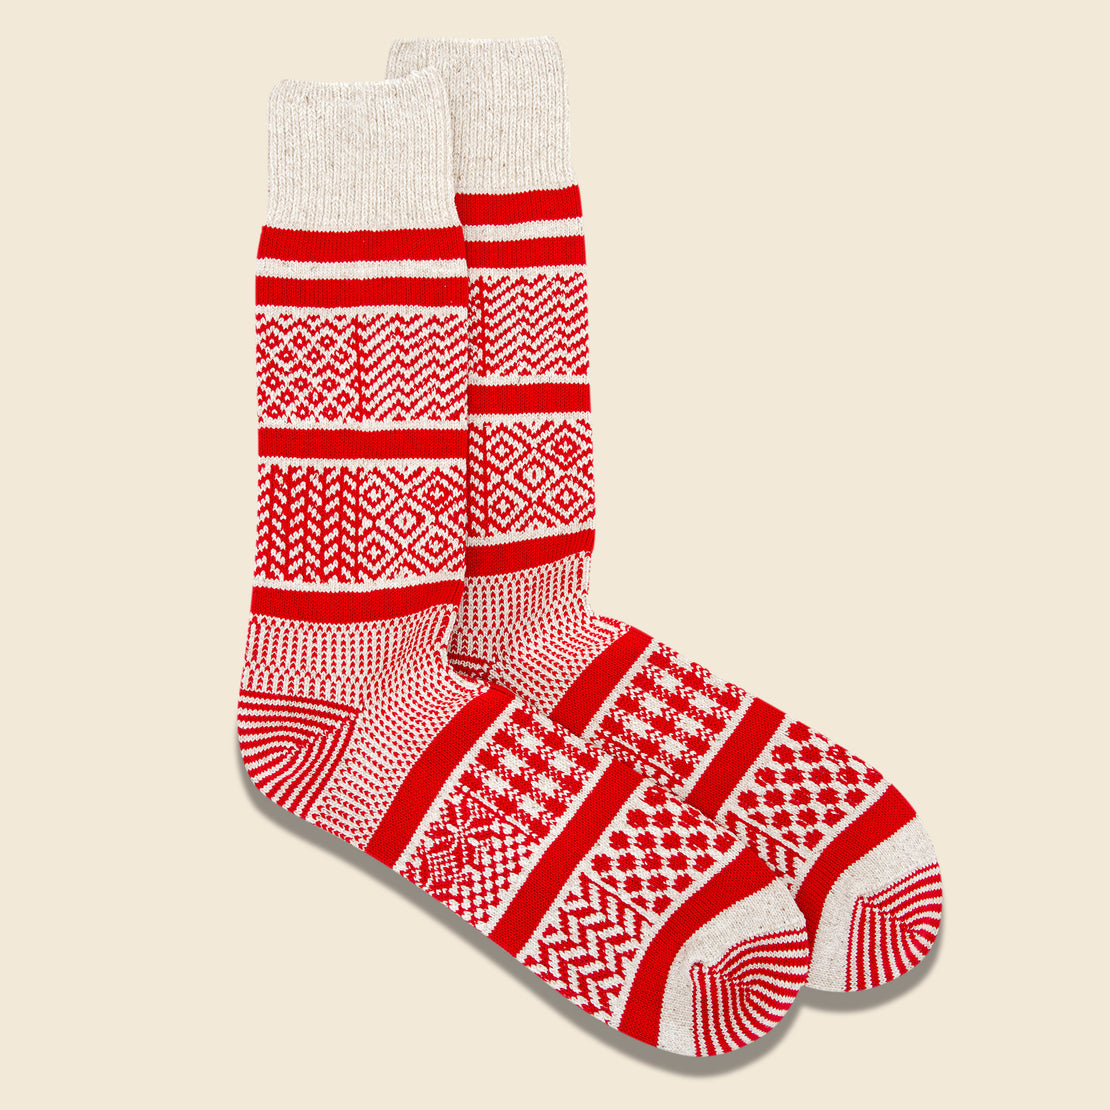 Multi Jacquard Sock - Ivory/Red